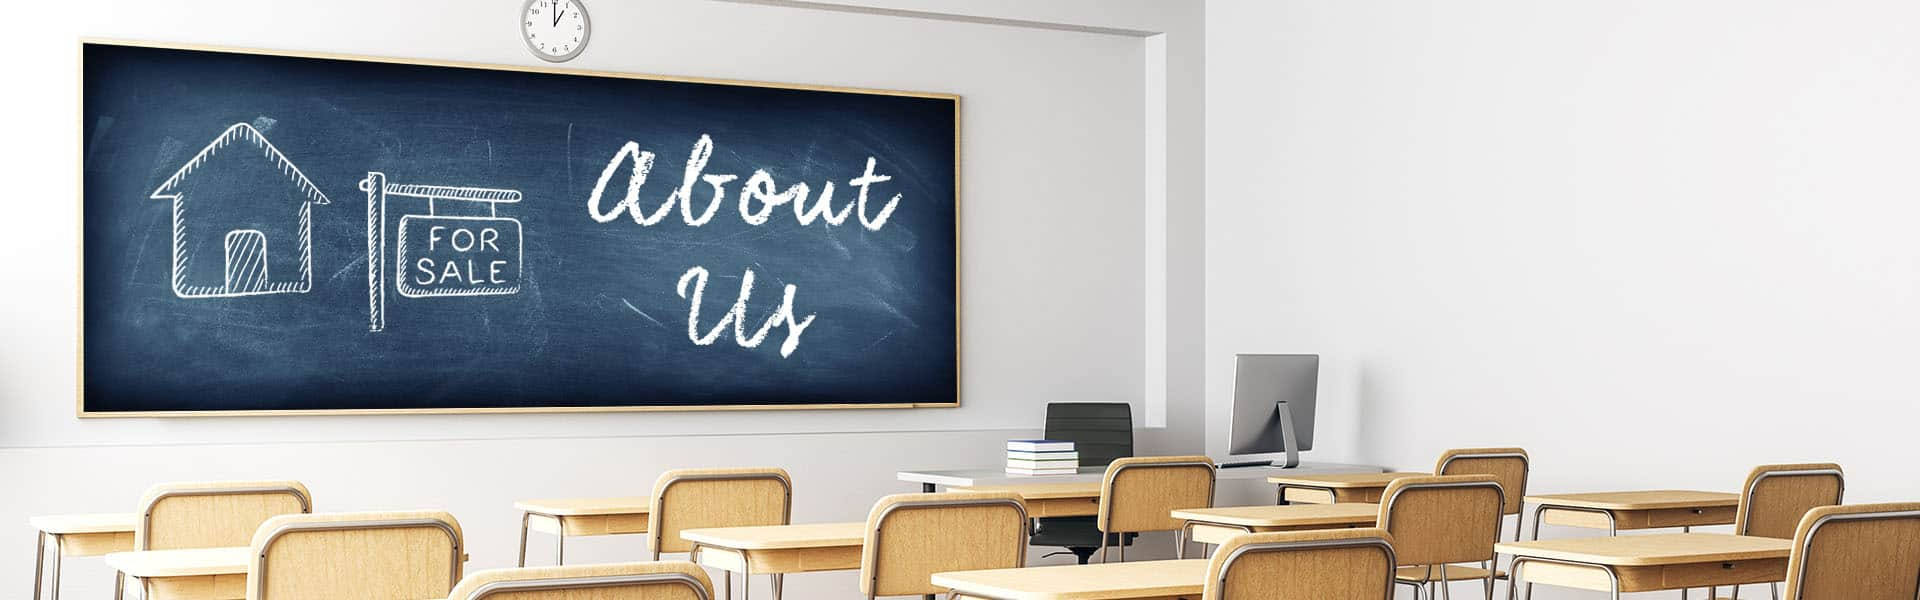 About Real Estate Academy of Colorado